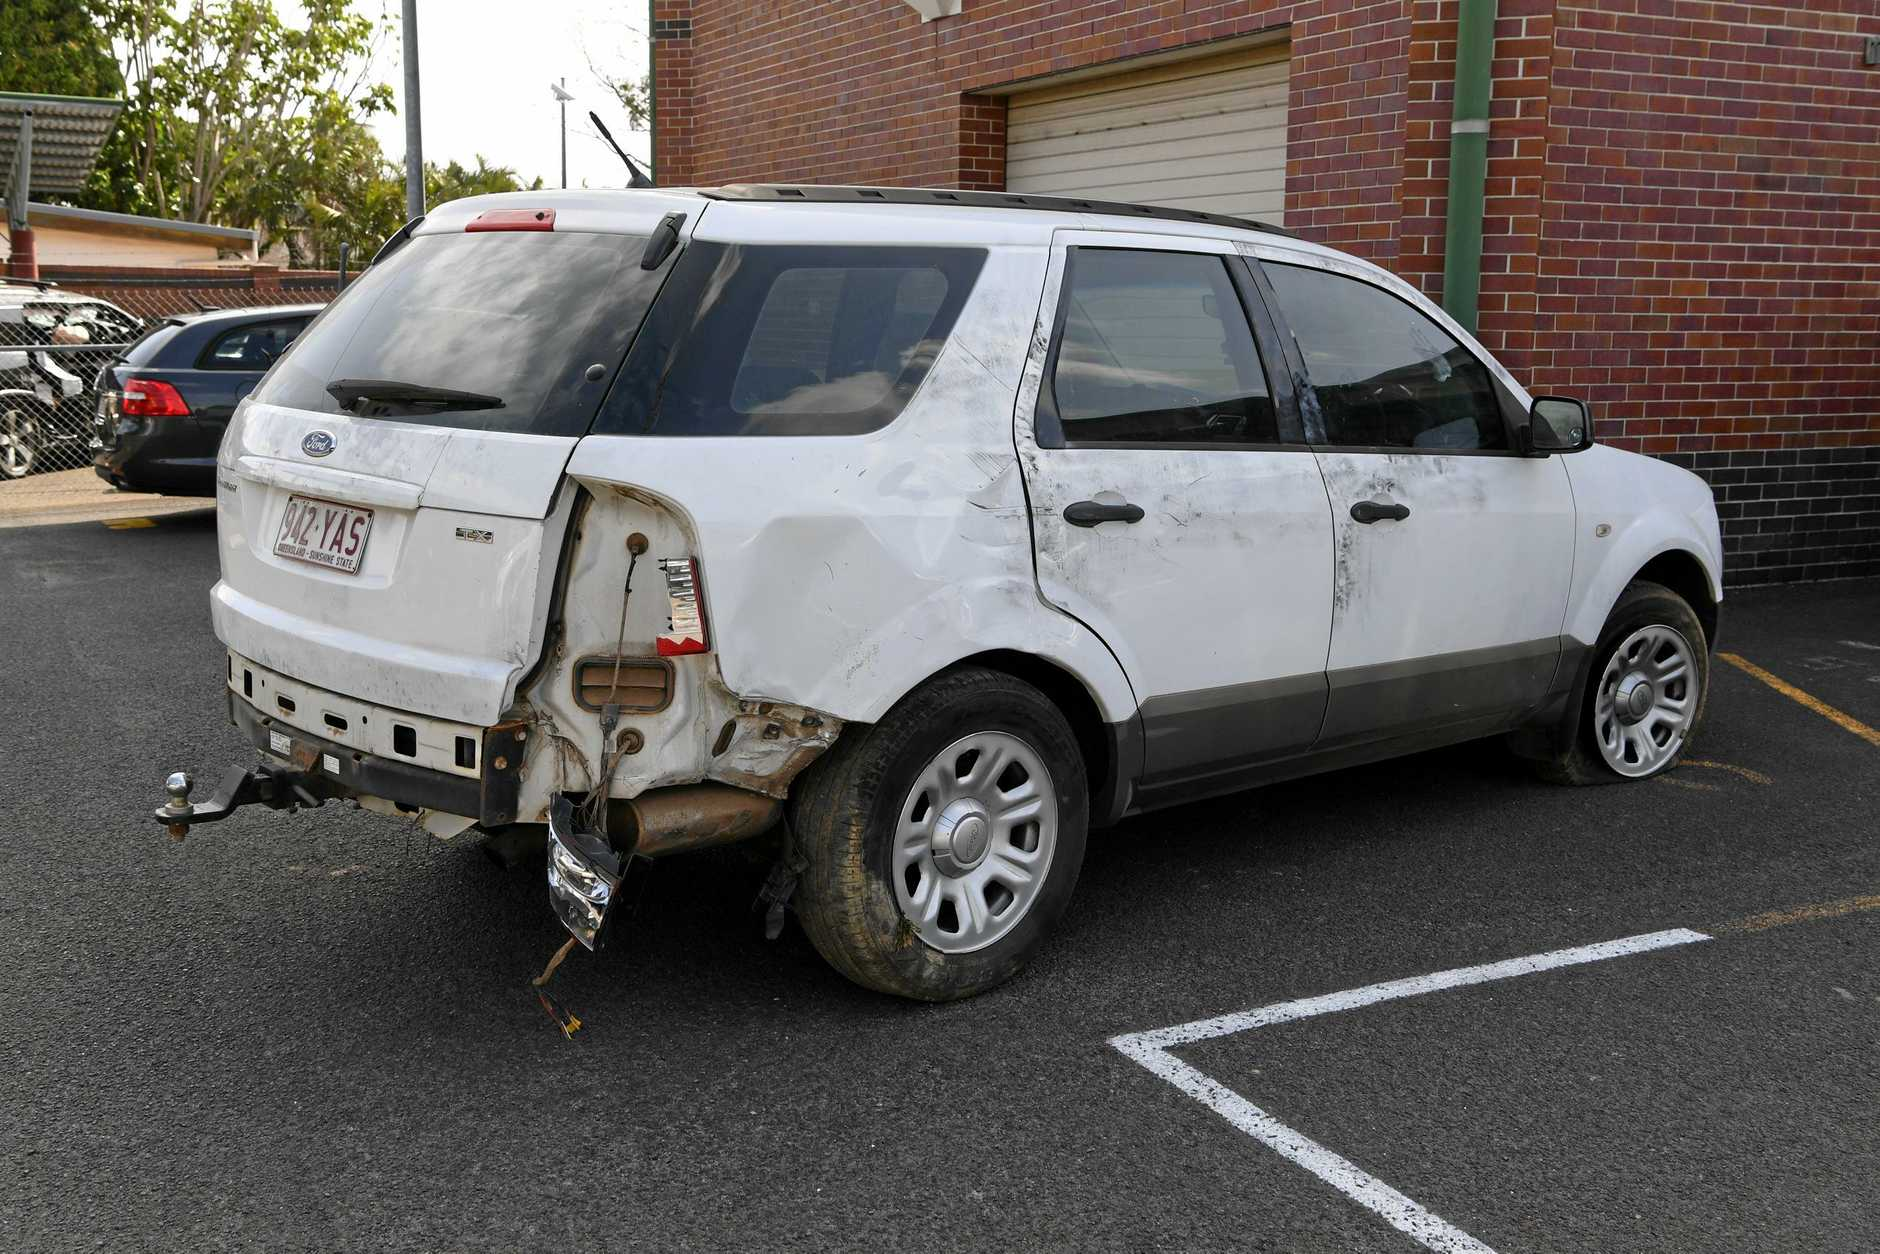 STOLEN: The recovered Ford Territory which had significant damage from the police chase.